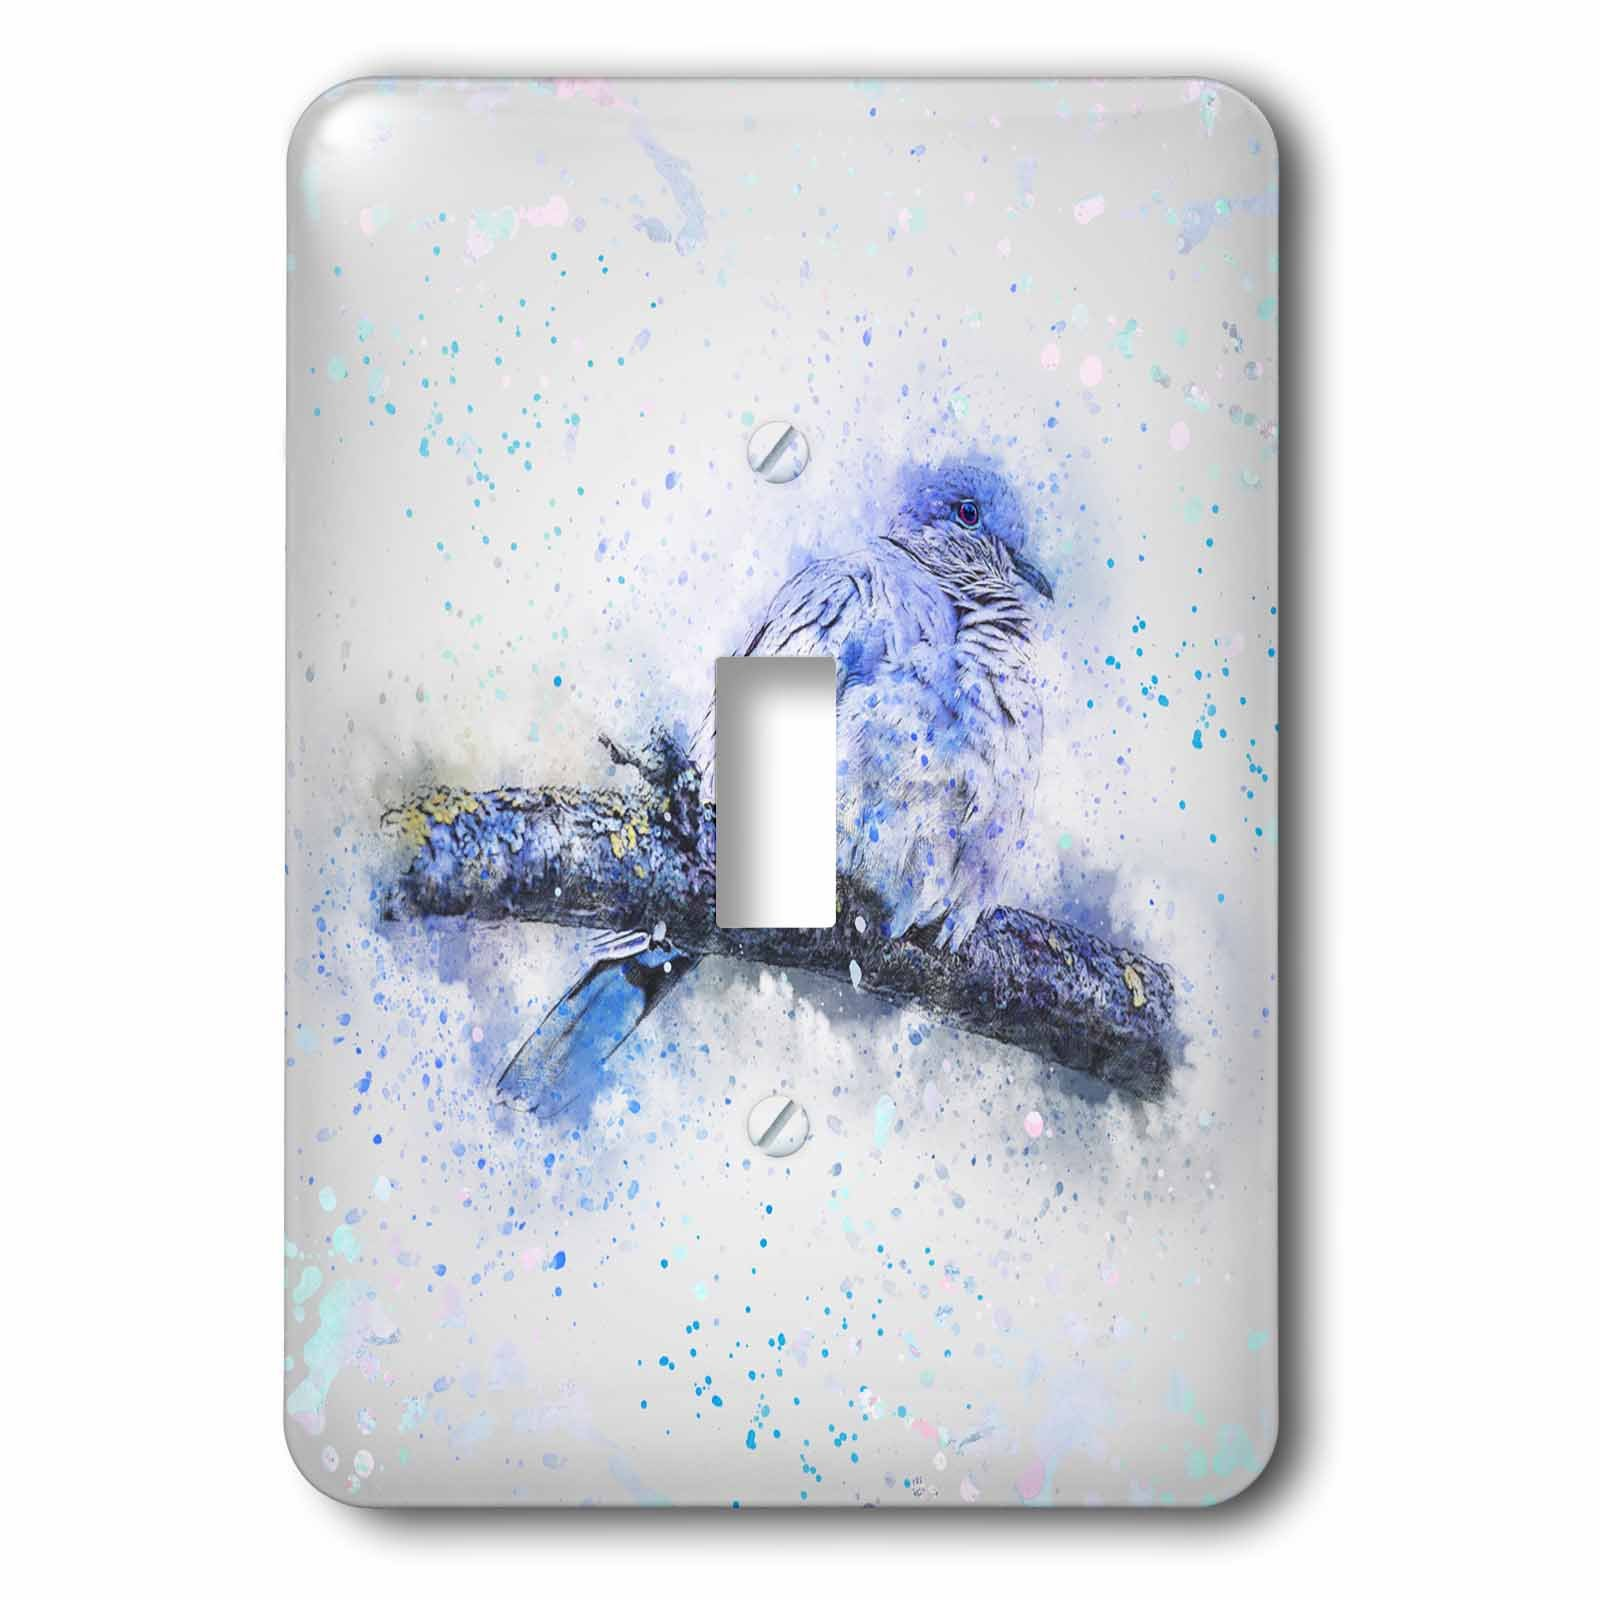 3dRose Andrea Haase Animals Illustration - Blue Watercolor Bird Painting - Light Switch Covers - single toggle switch (lsp_282469_1)